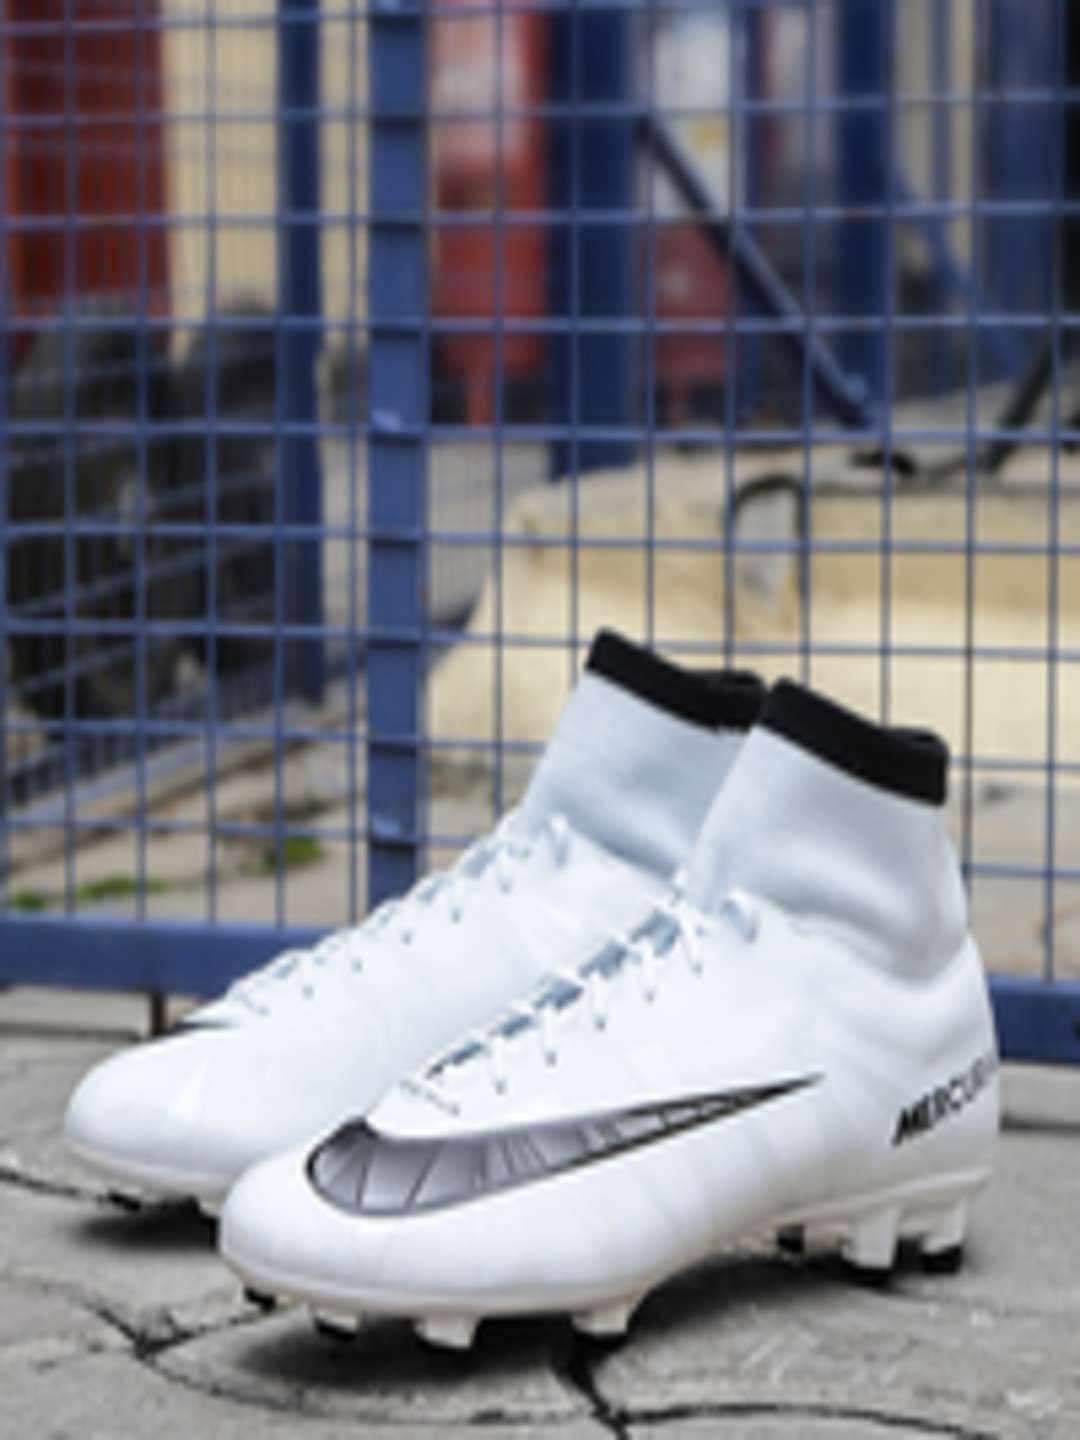 Buy Nike Men White Synthetic High Top VICTORY VI CR7 Football Shoes -  Sports Shoes for Men 2147523  75587c486a6c